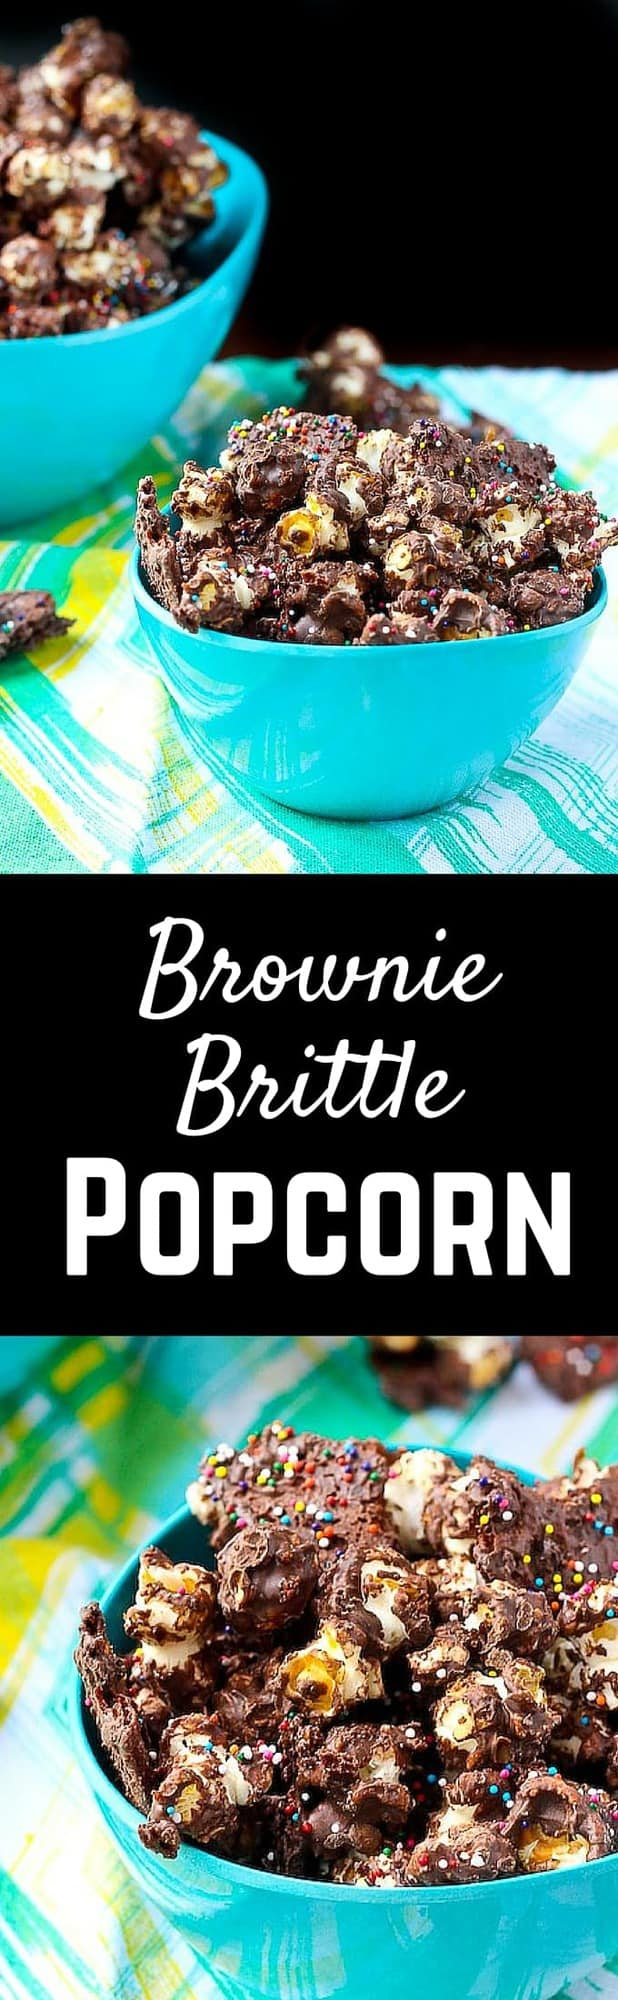 Brownie Brittle popcorn answers the question,